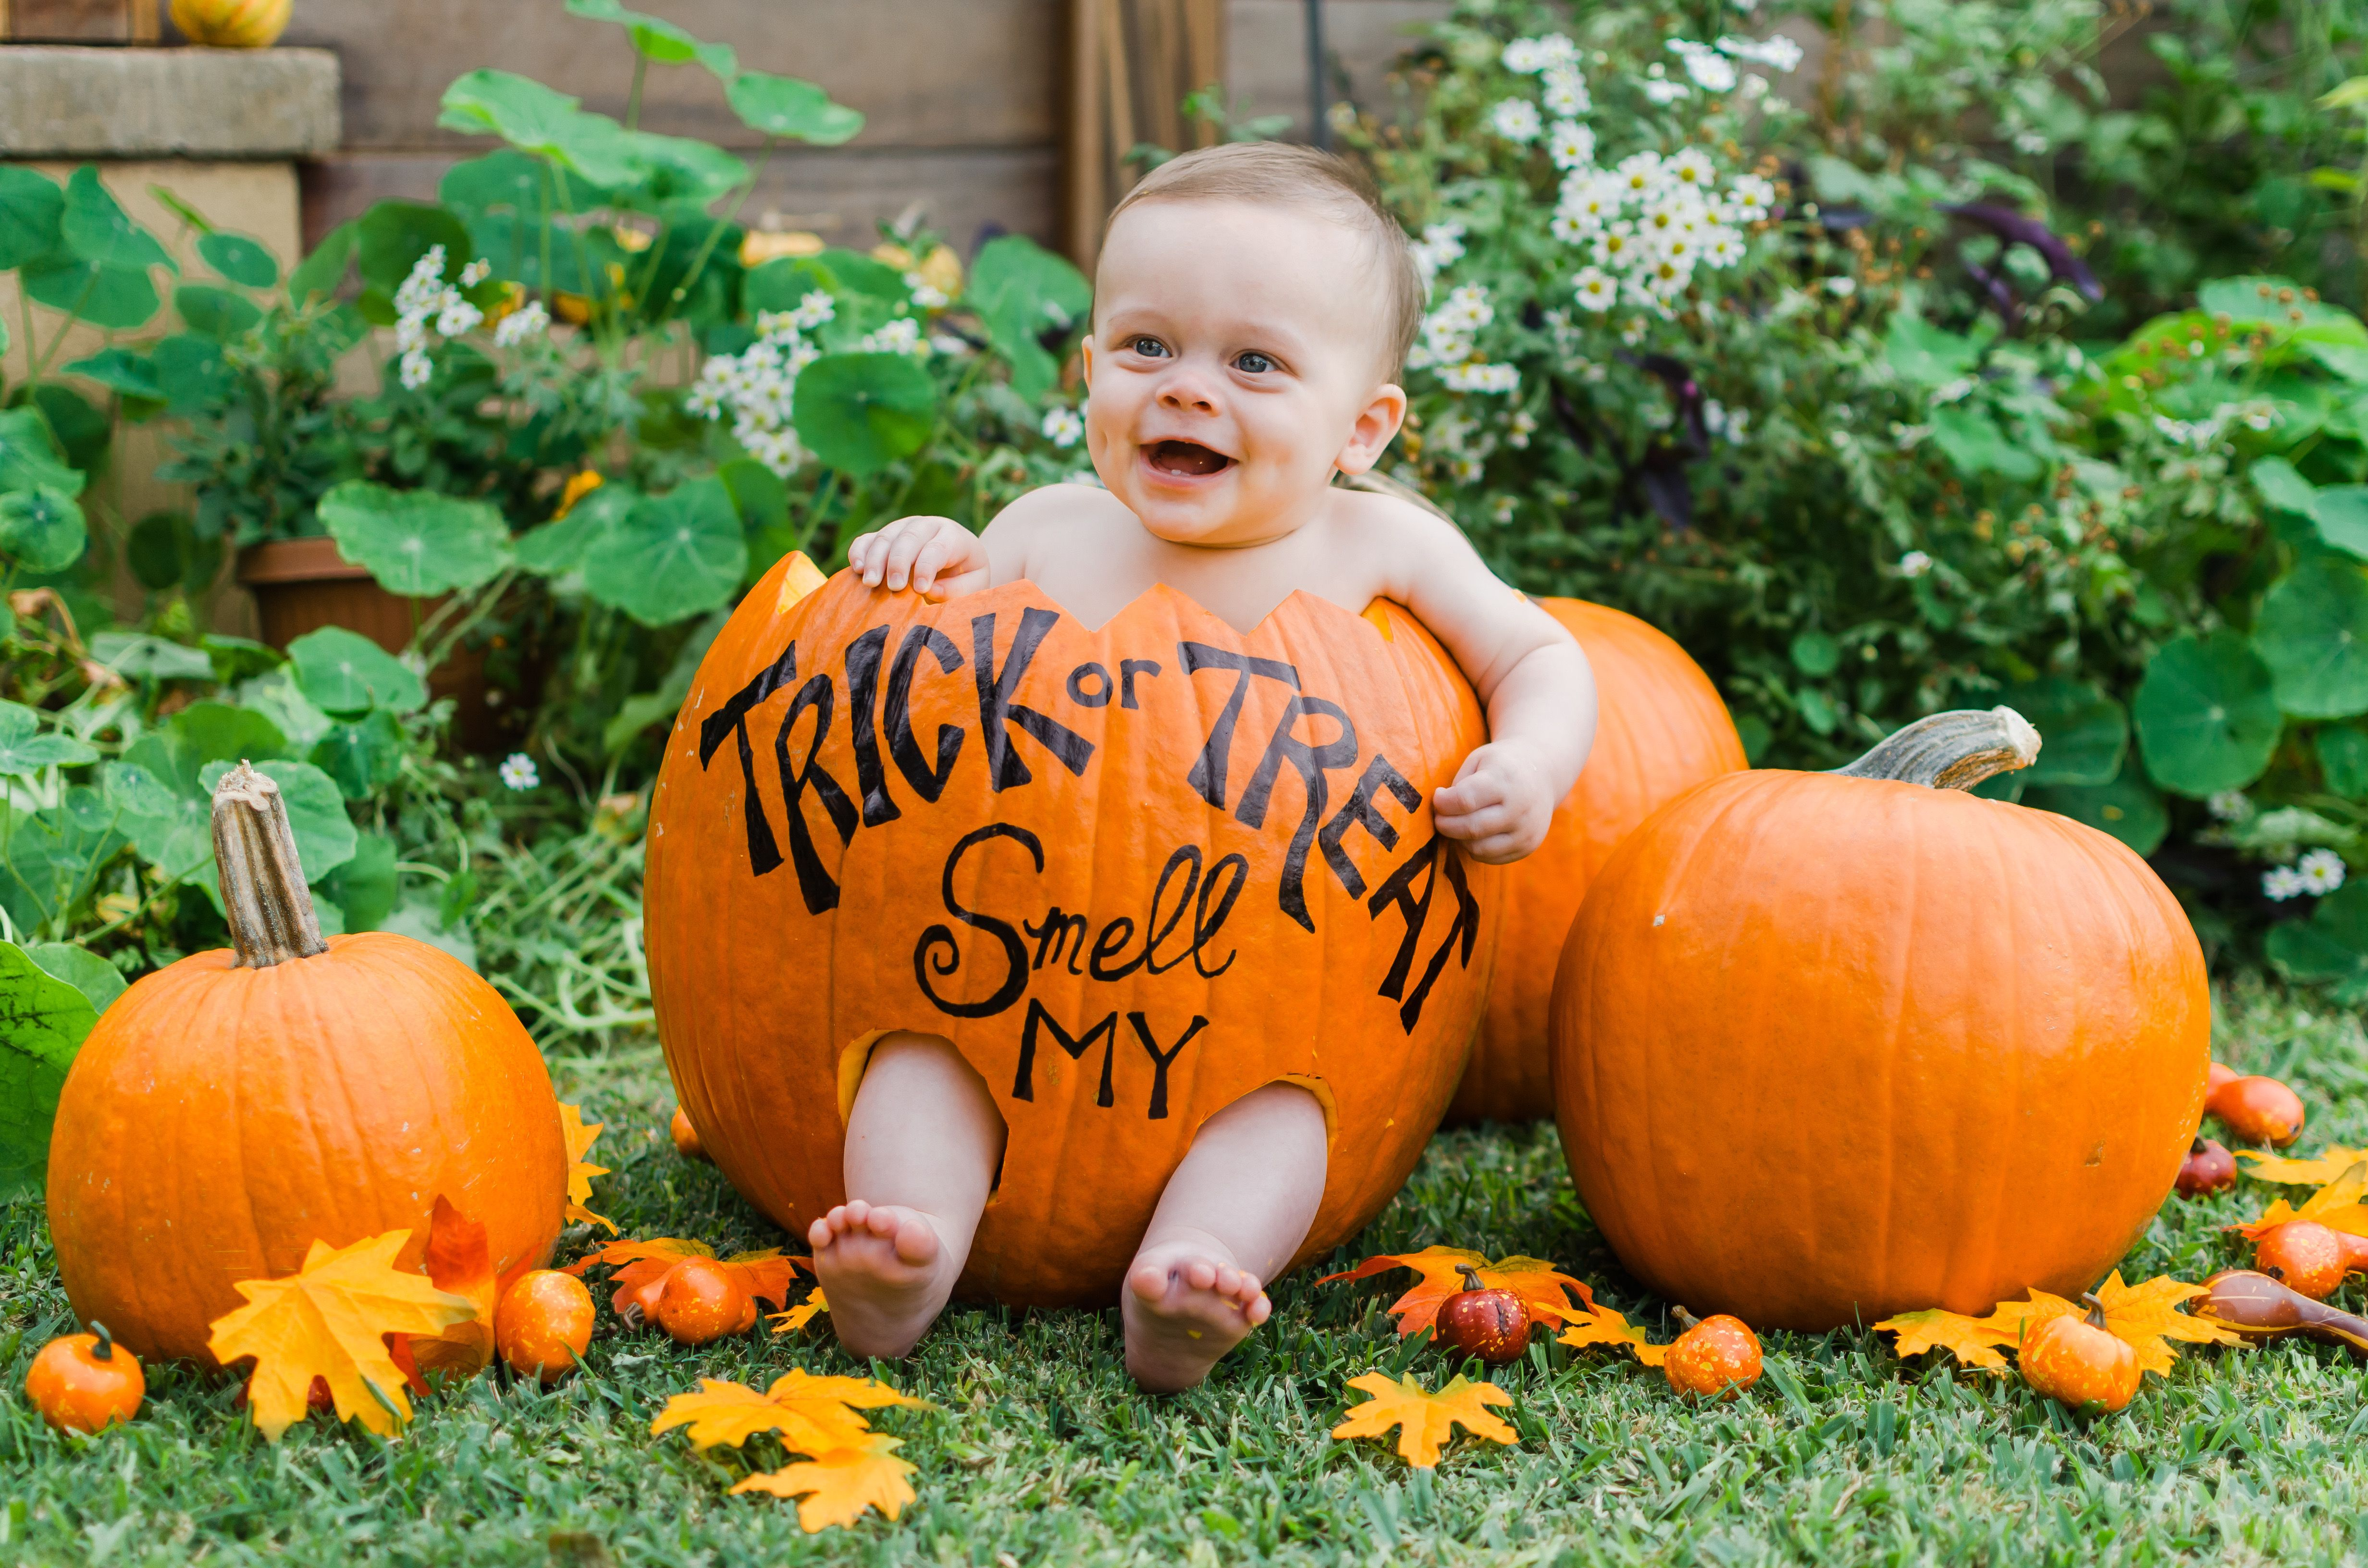 Pin by Julia Cobbs on holiday! Baby in pumpkin, First